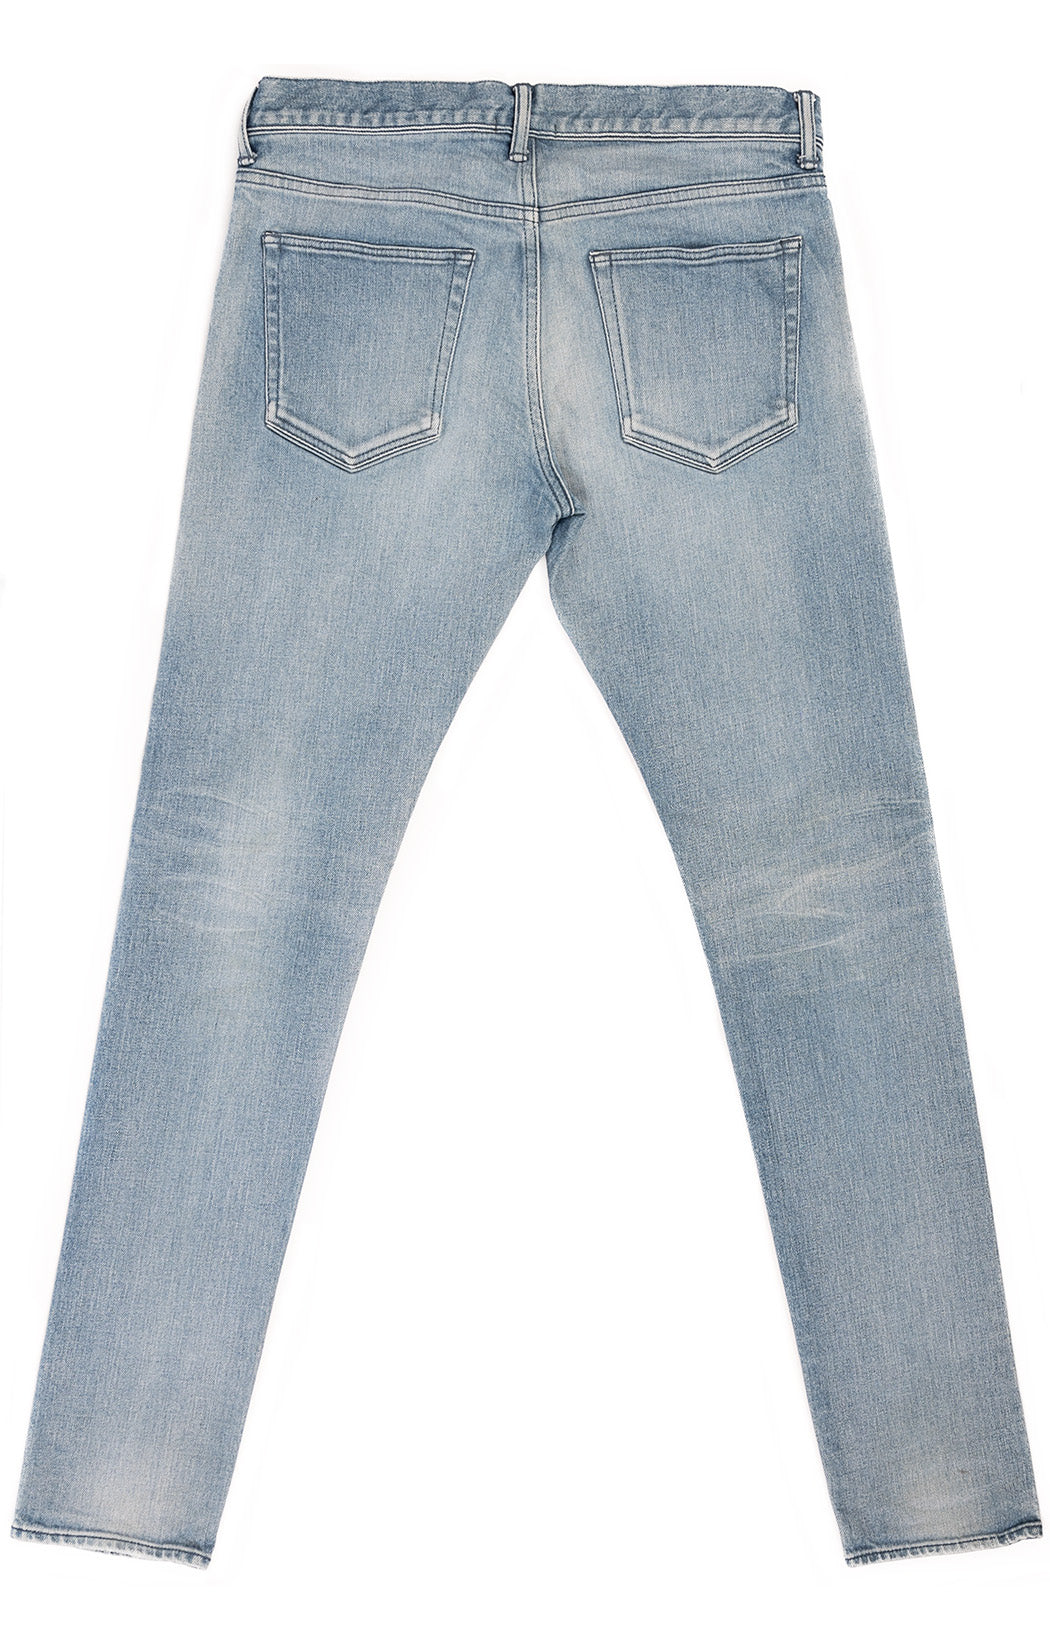 Denim five pocket jeans